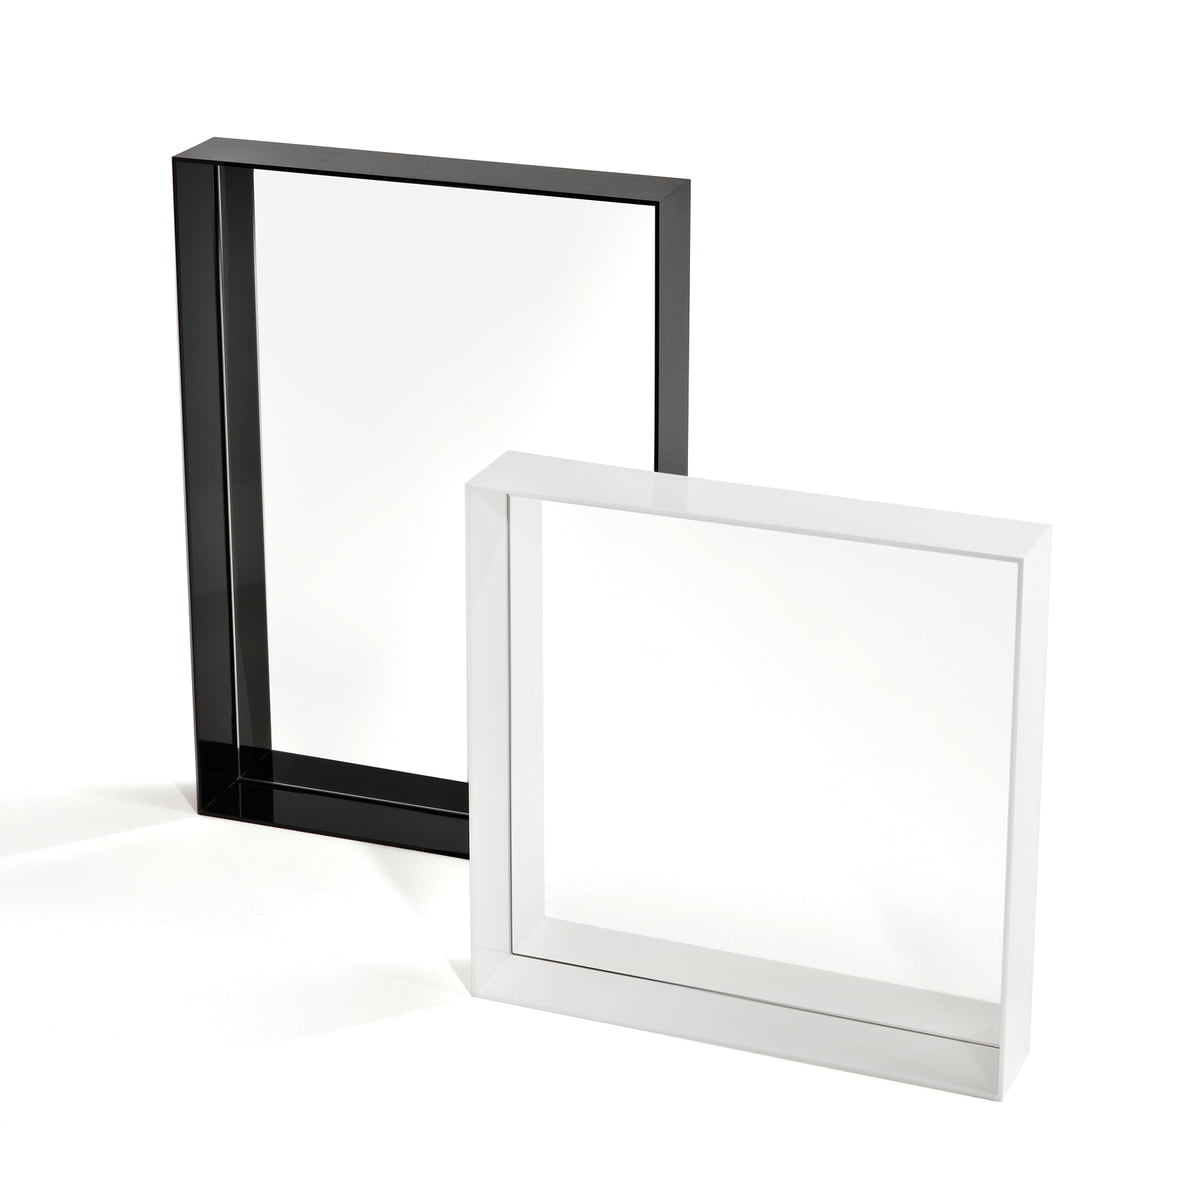 The Only Me Mirror by Kartell in the shop